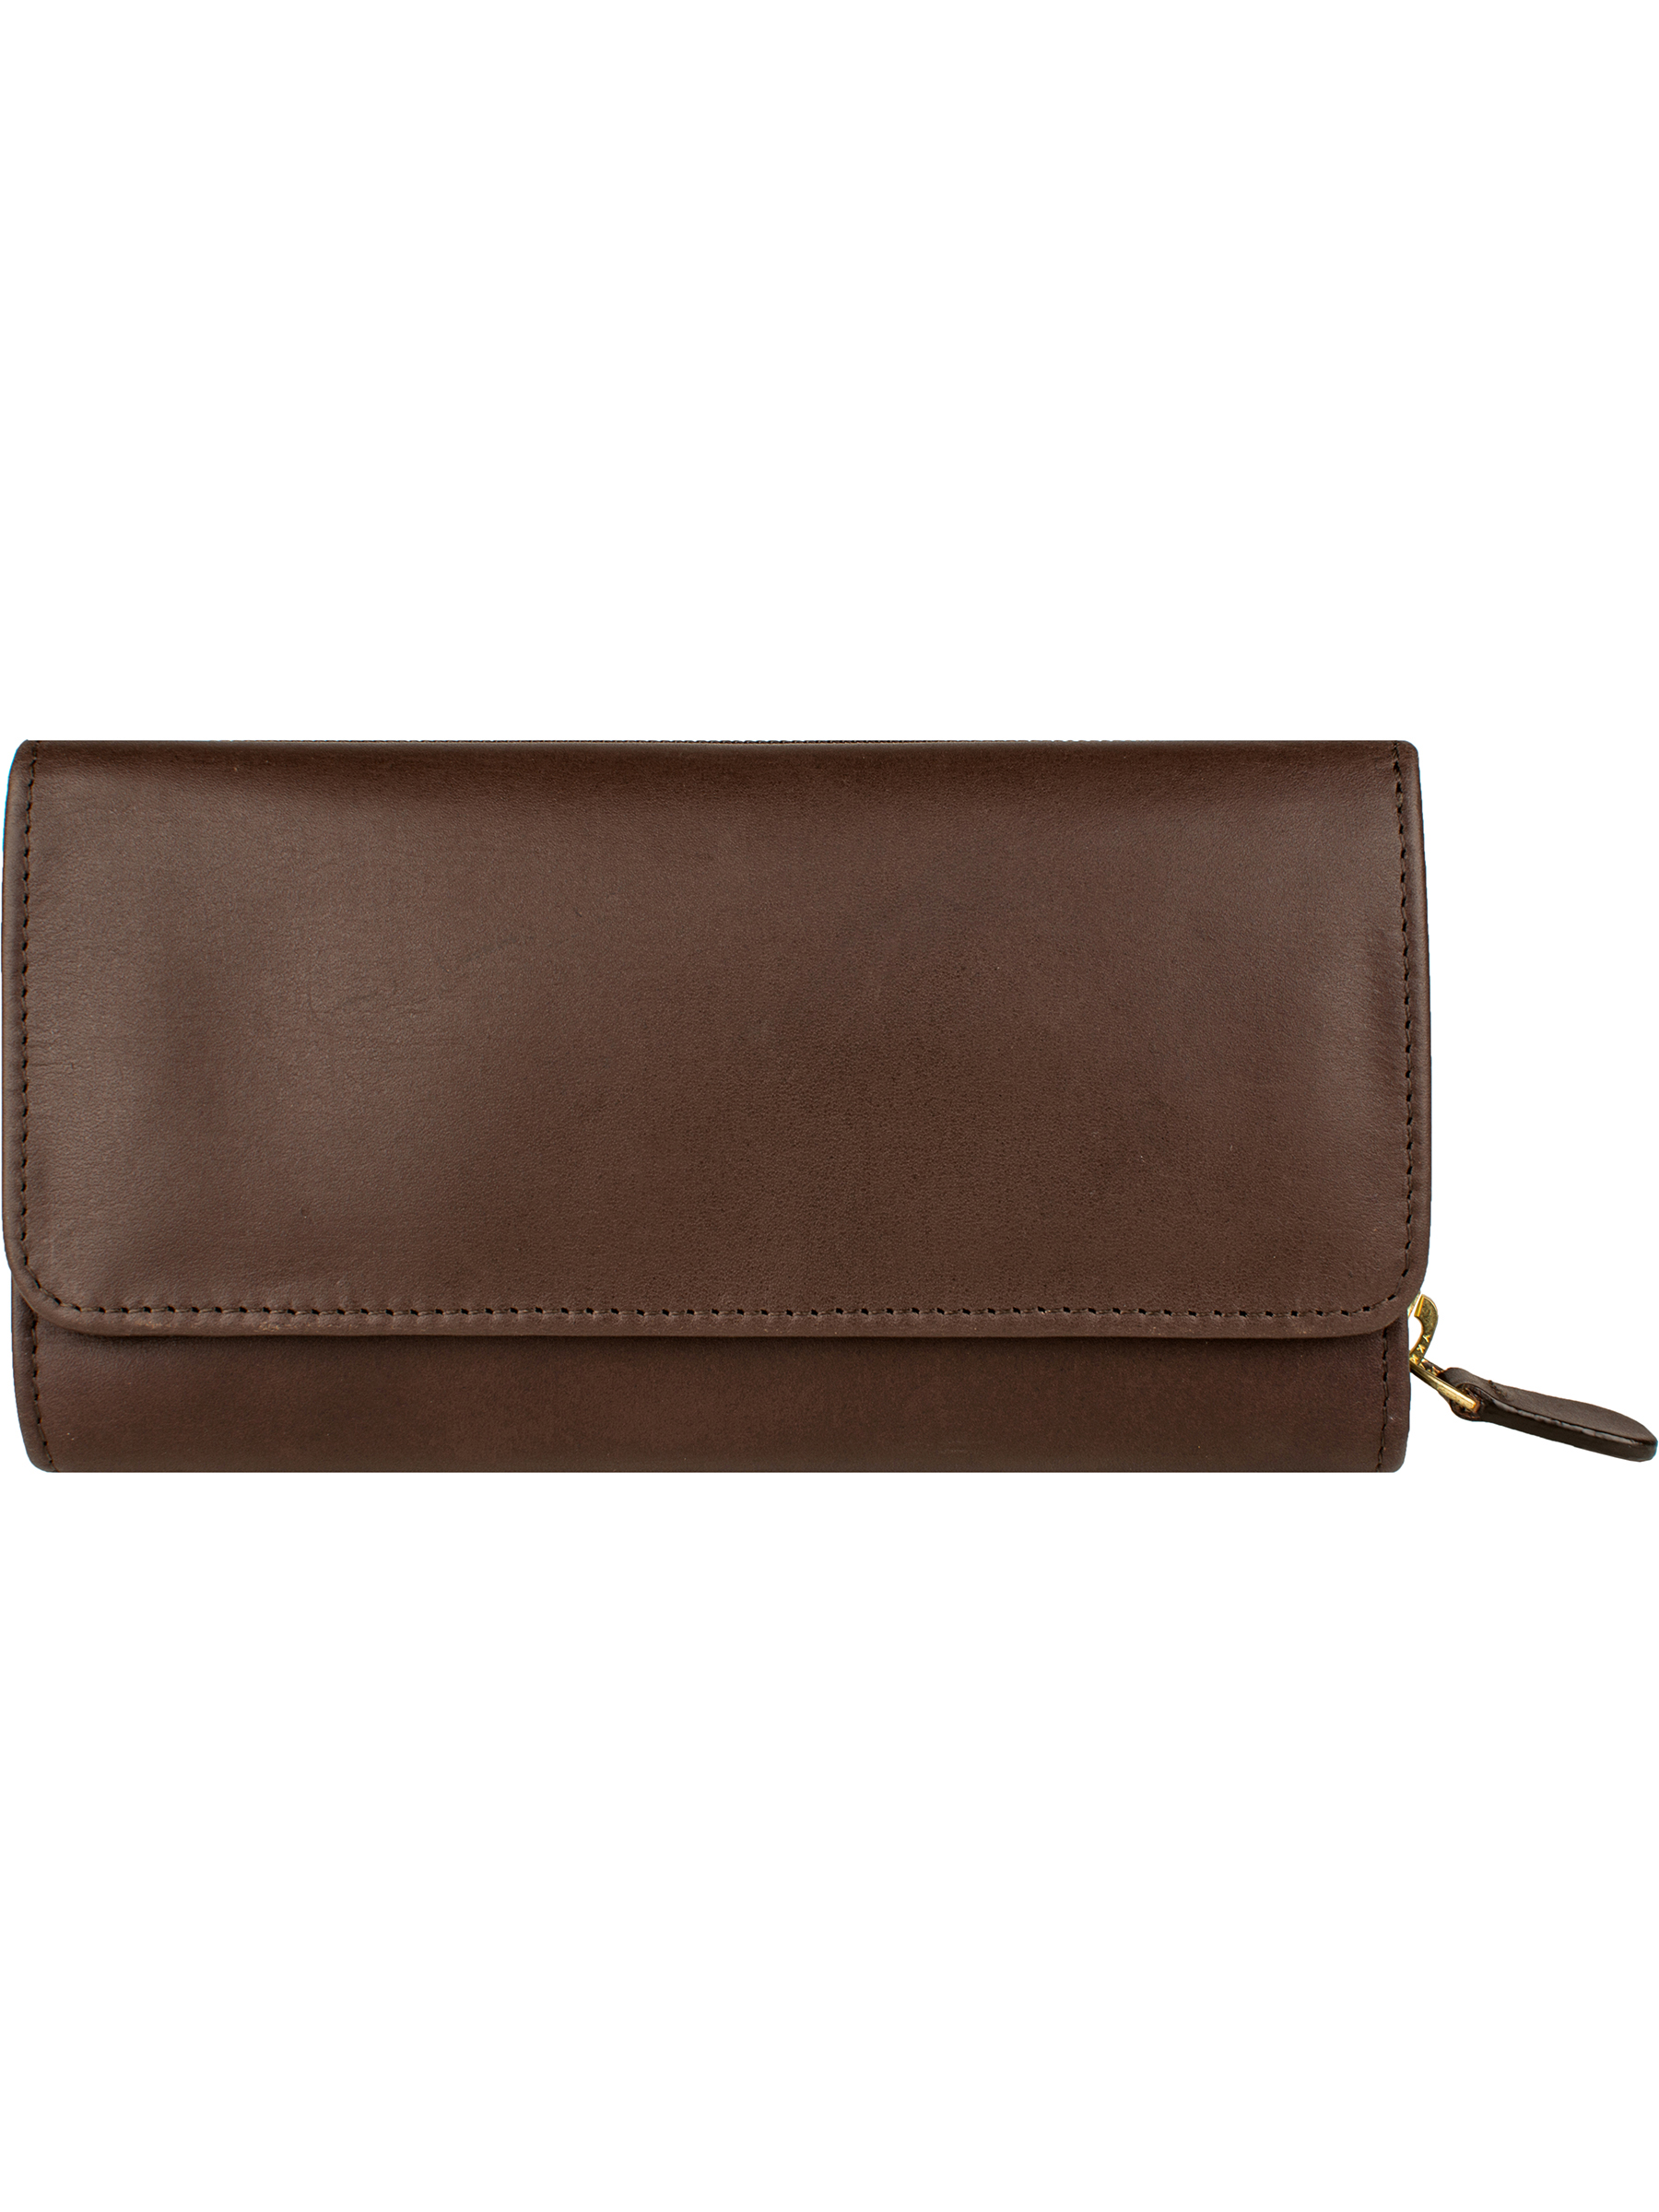 Clutch wallet with 3-way zip coin purse